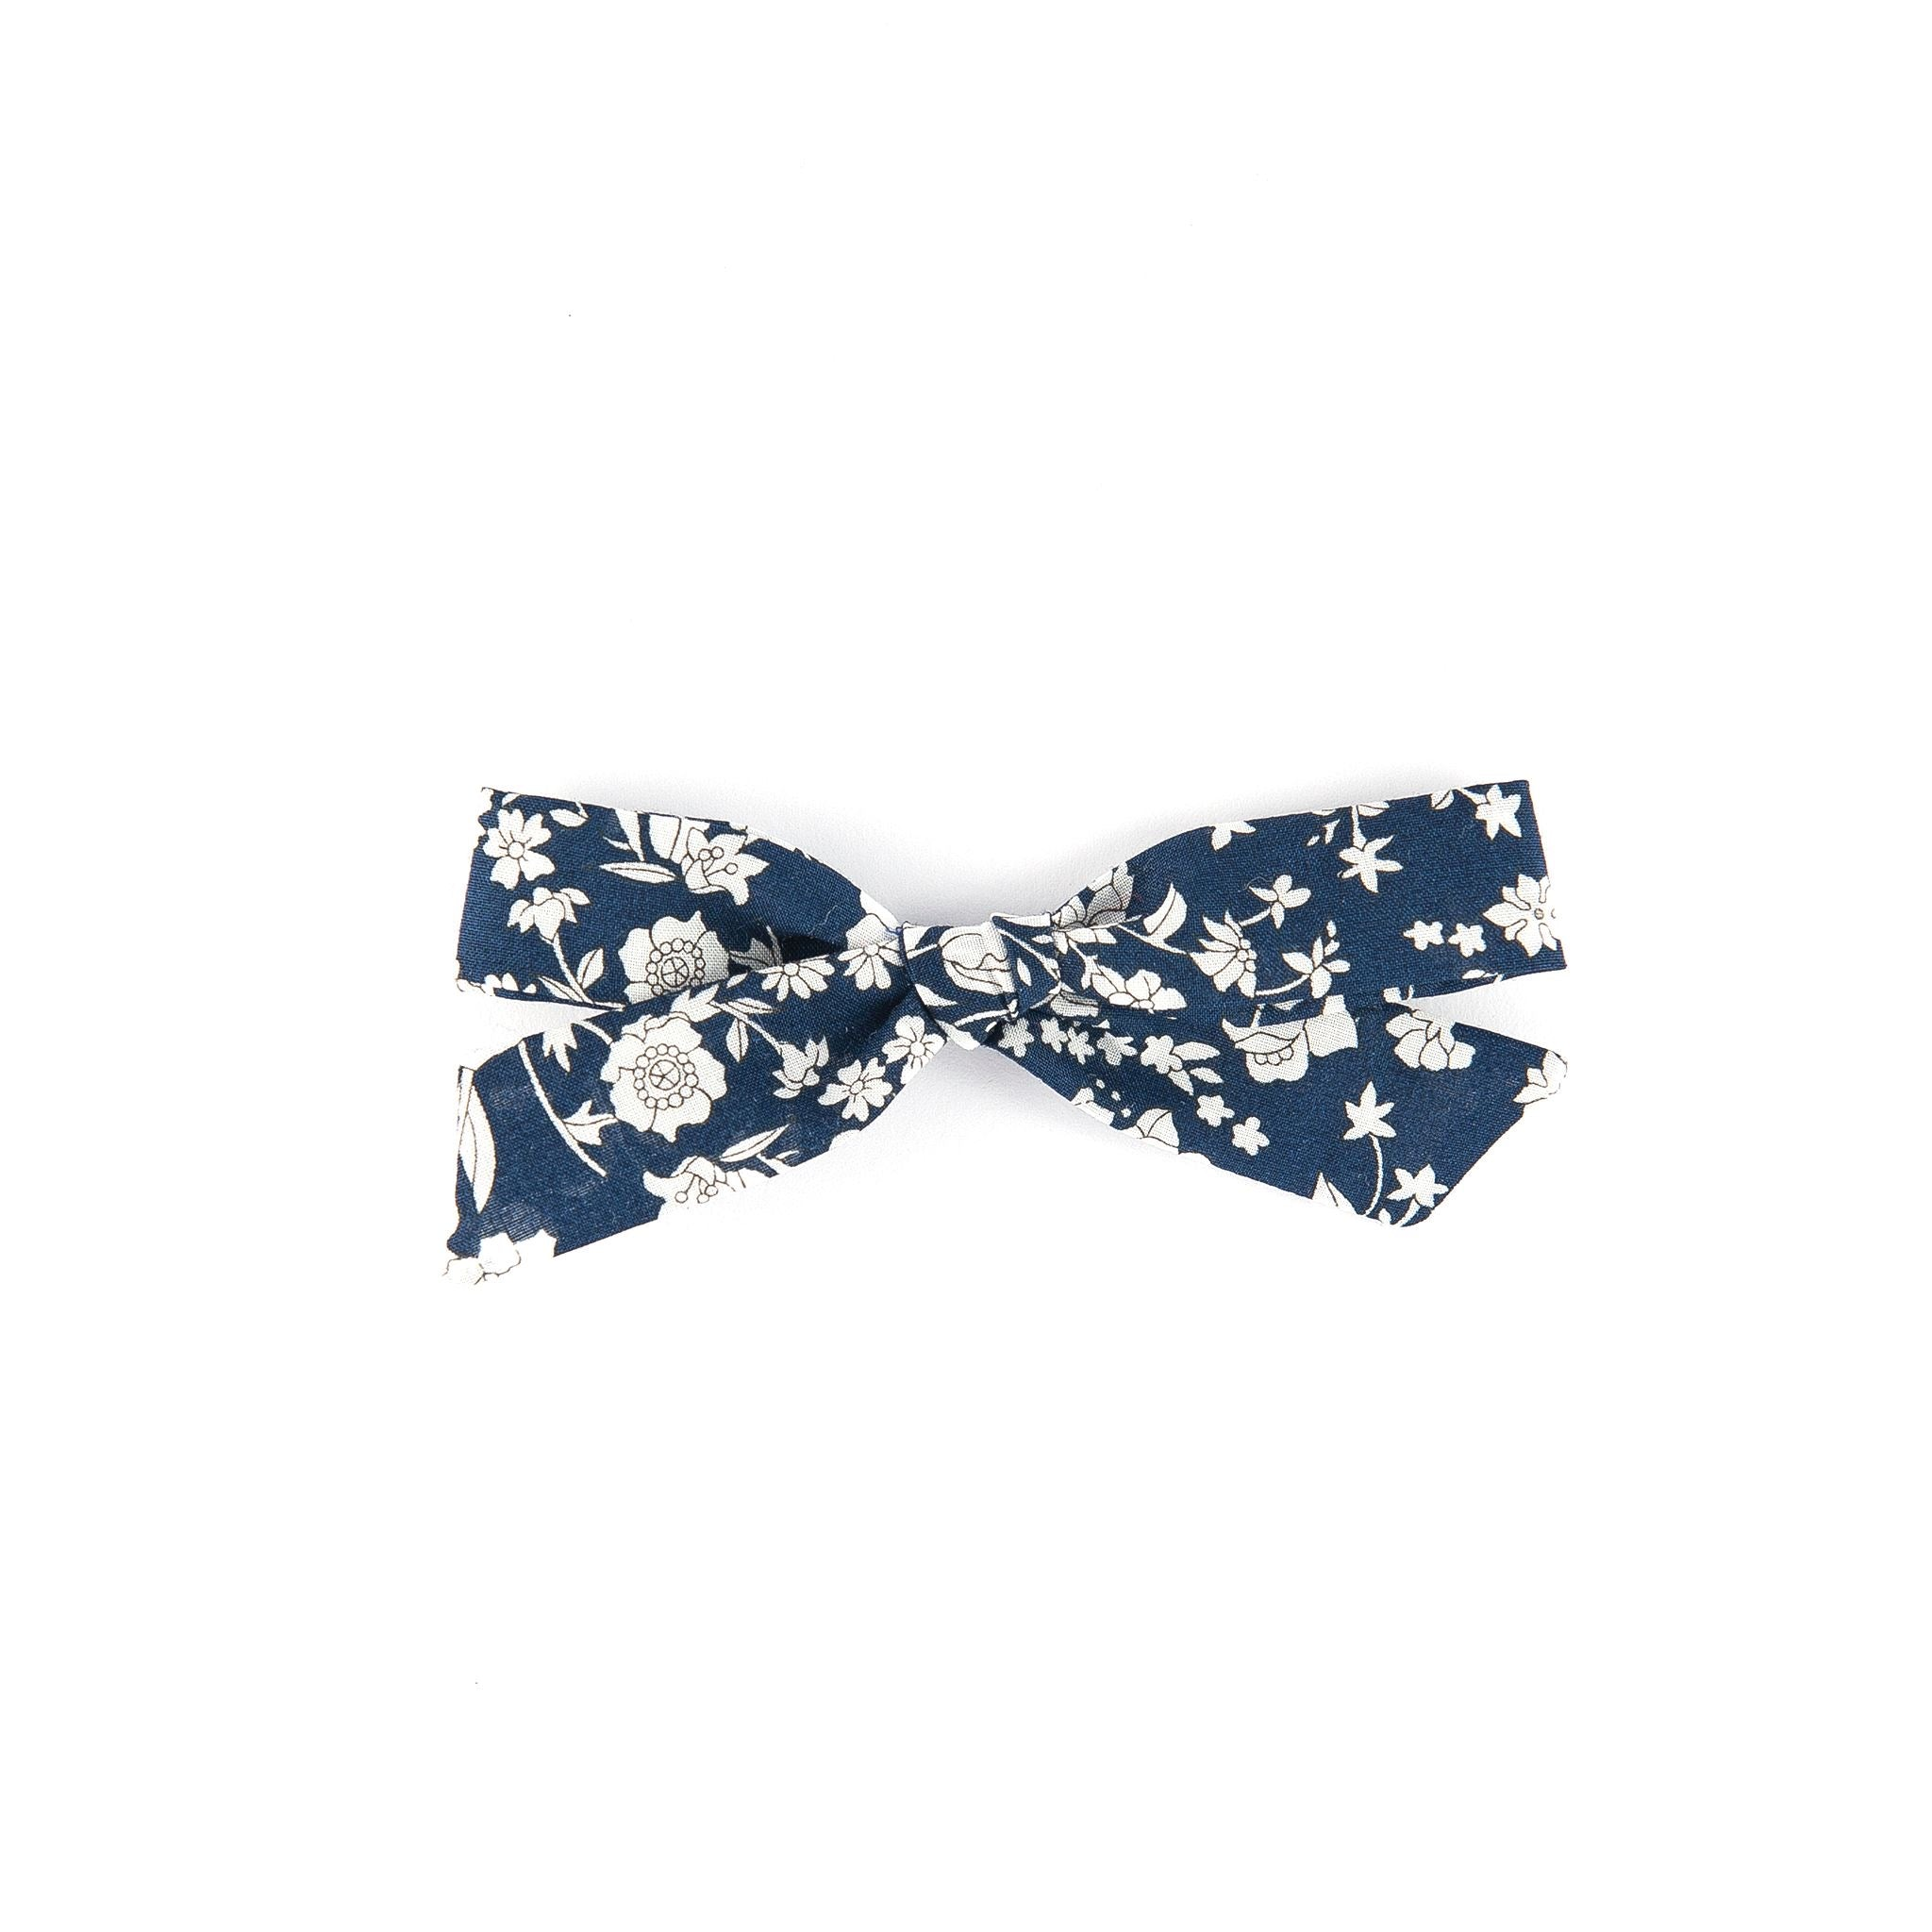 Pigtail bow - Navy Summer Bloom